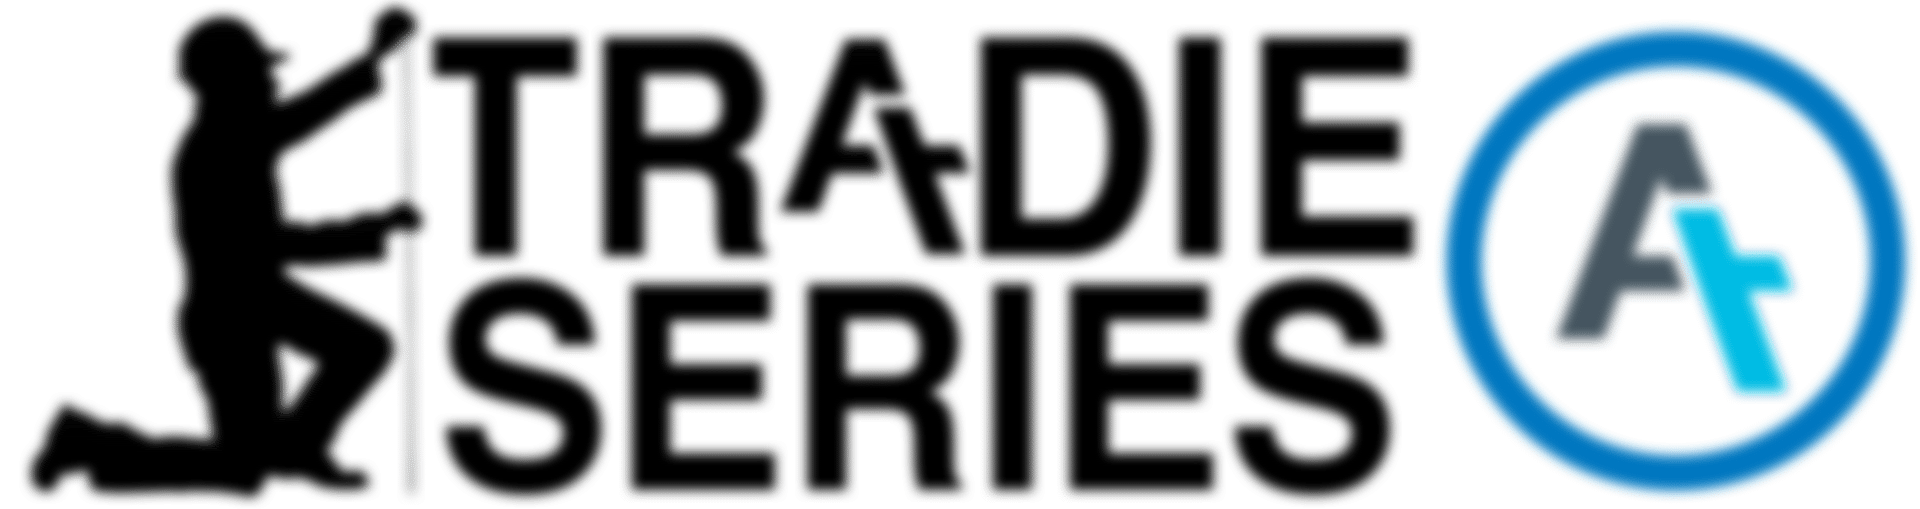 FINAL TRADIE LOGO copy